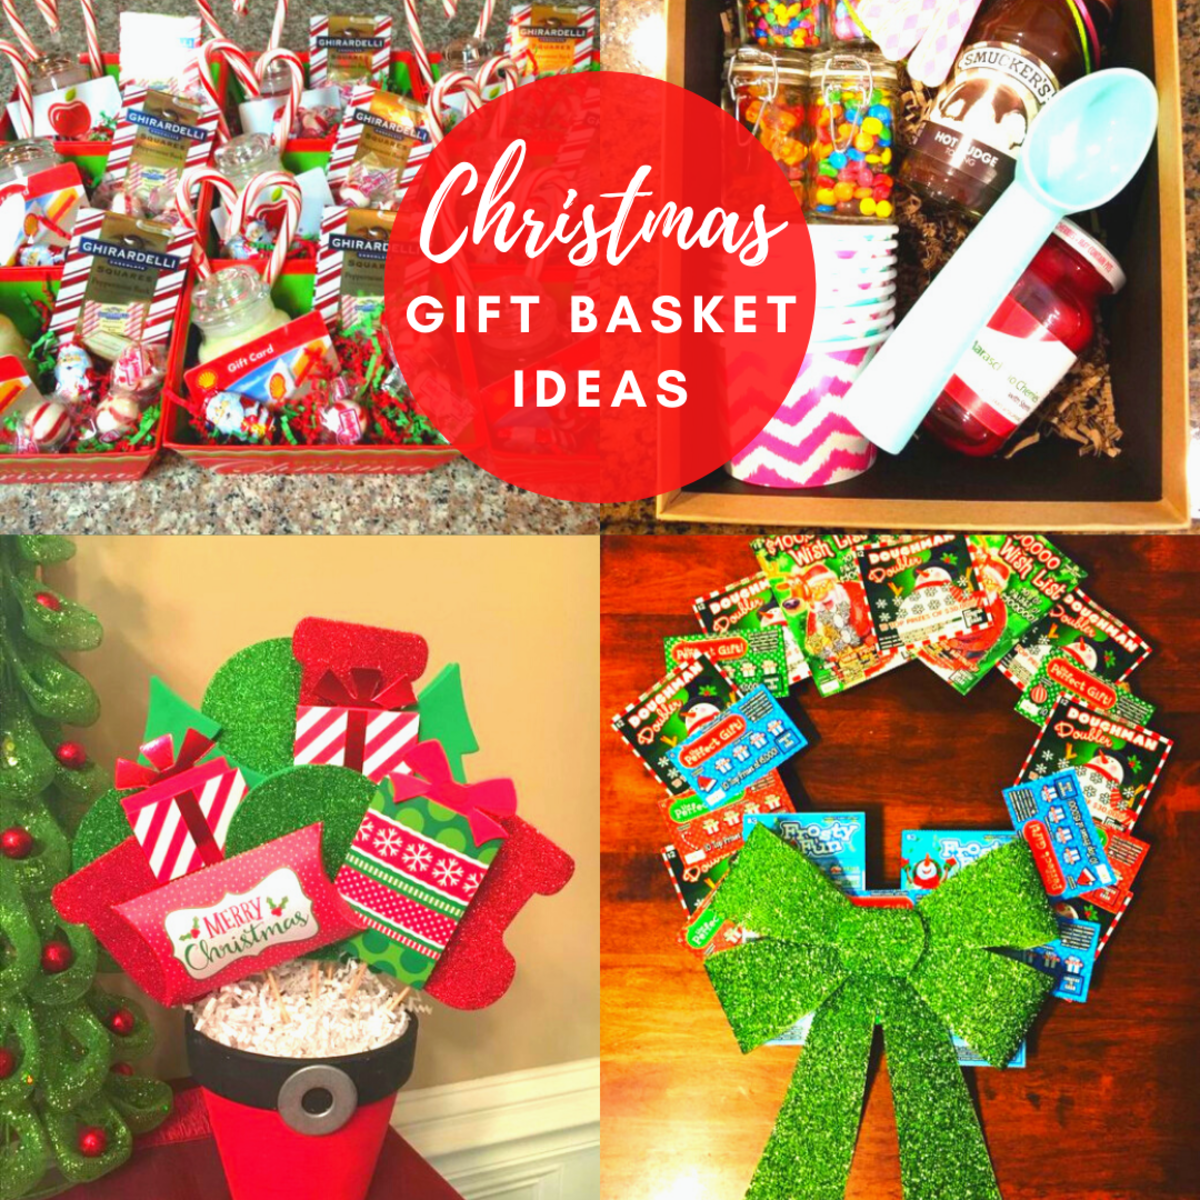 Christmas Gift Basket Ideas for Friends